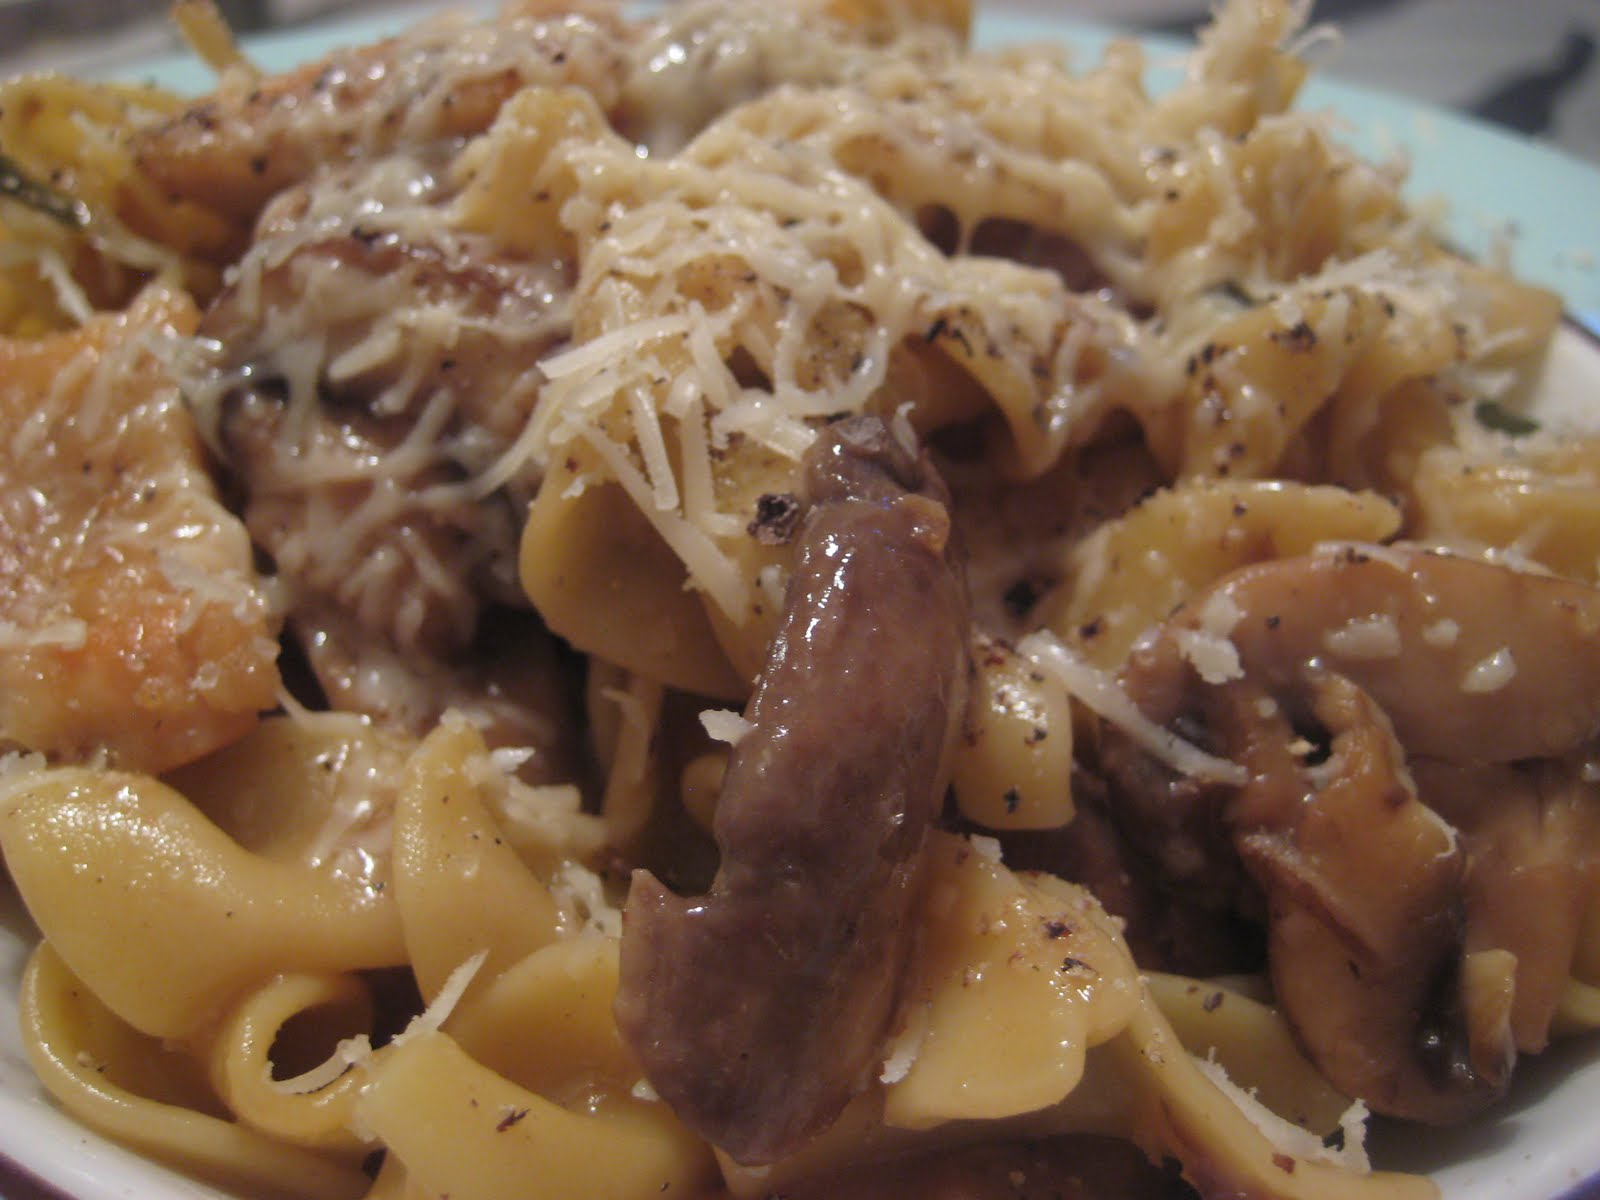 One Couple's Kitchen: Chicken & Mushrooms in Garlic White ...